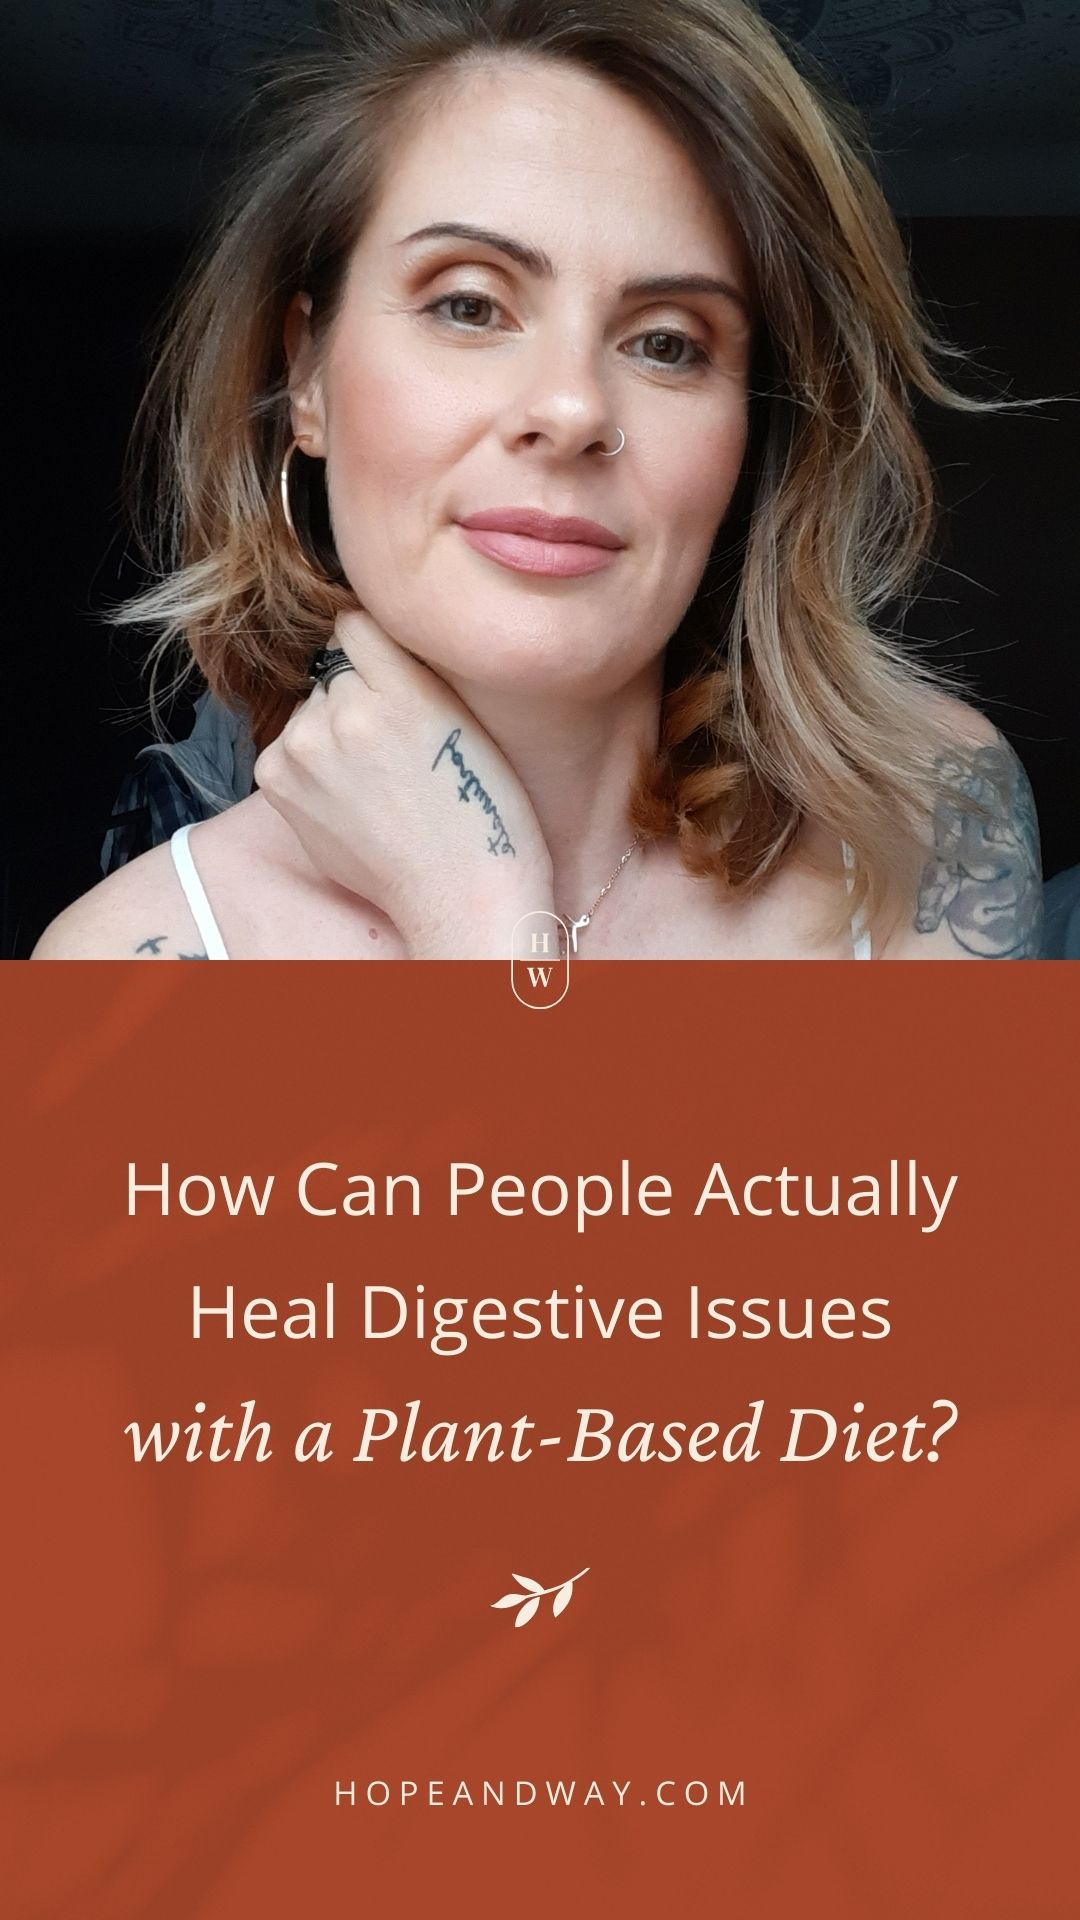 How Can People Actually Heal Digestive Issues with a Plant-Based Diet? interview with Vivien Lee